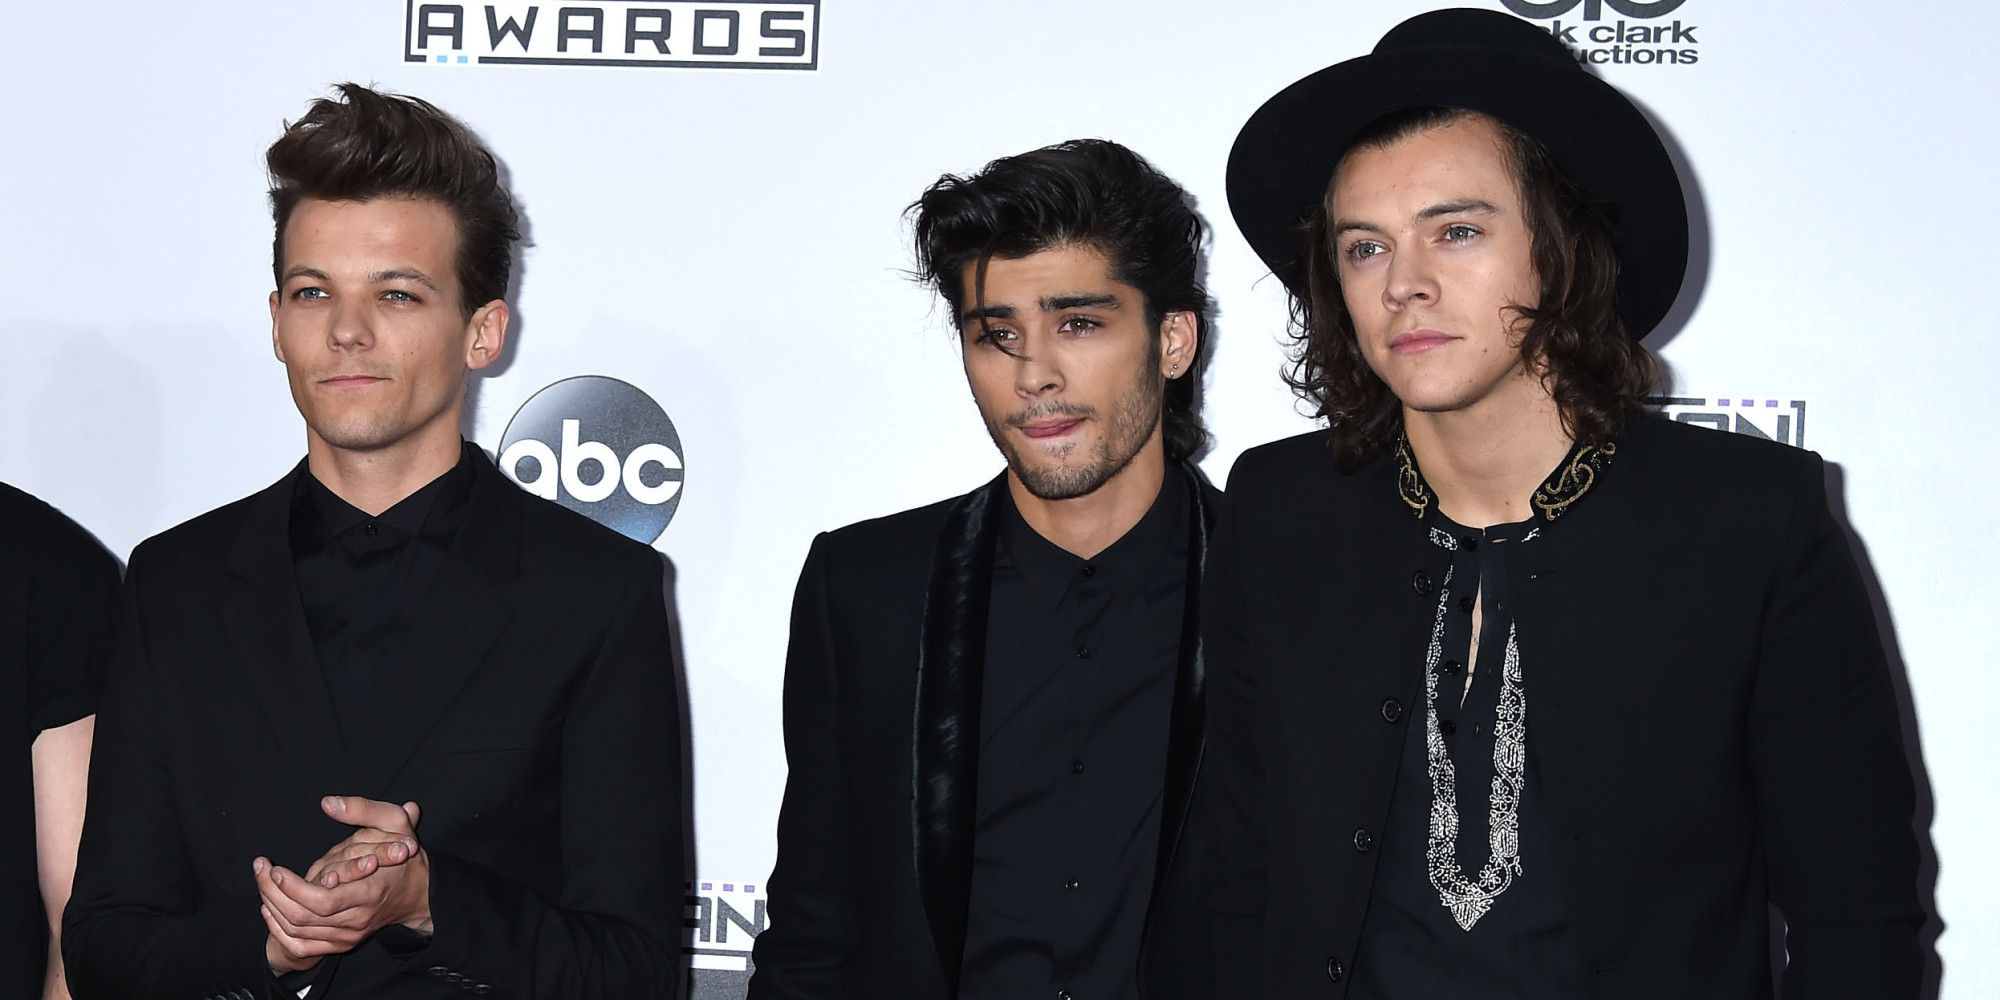 One Direction: Arriving at the red carpet - AMAs (23.11.2014.) |One Direction Amas 2014